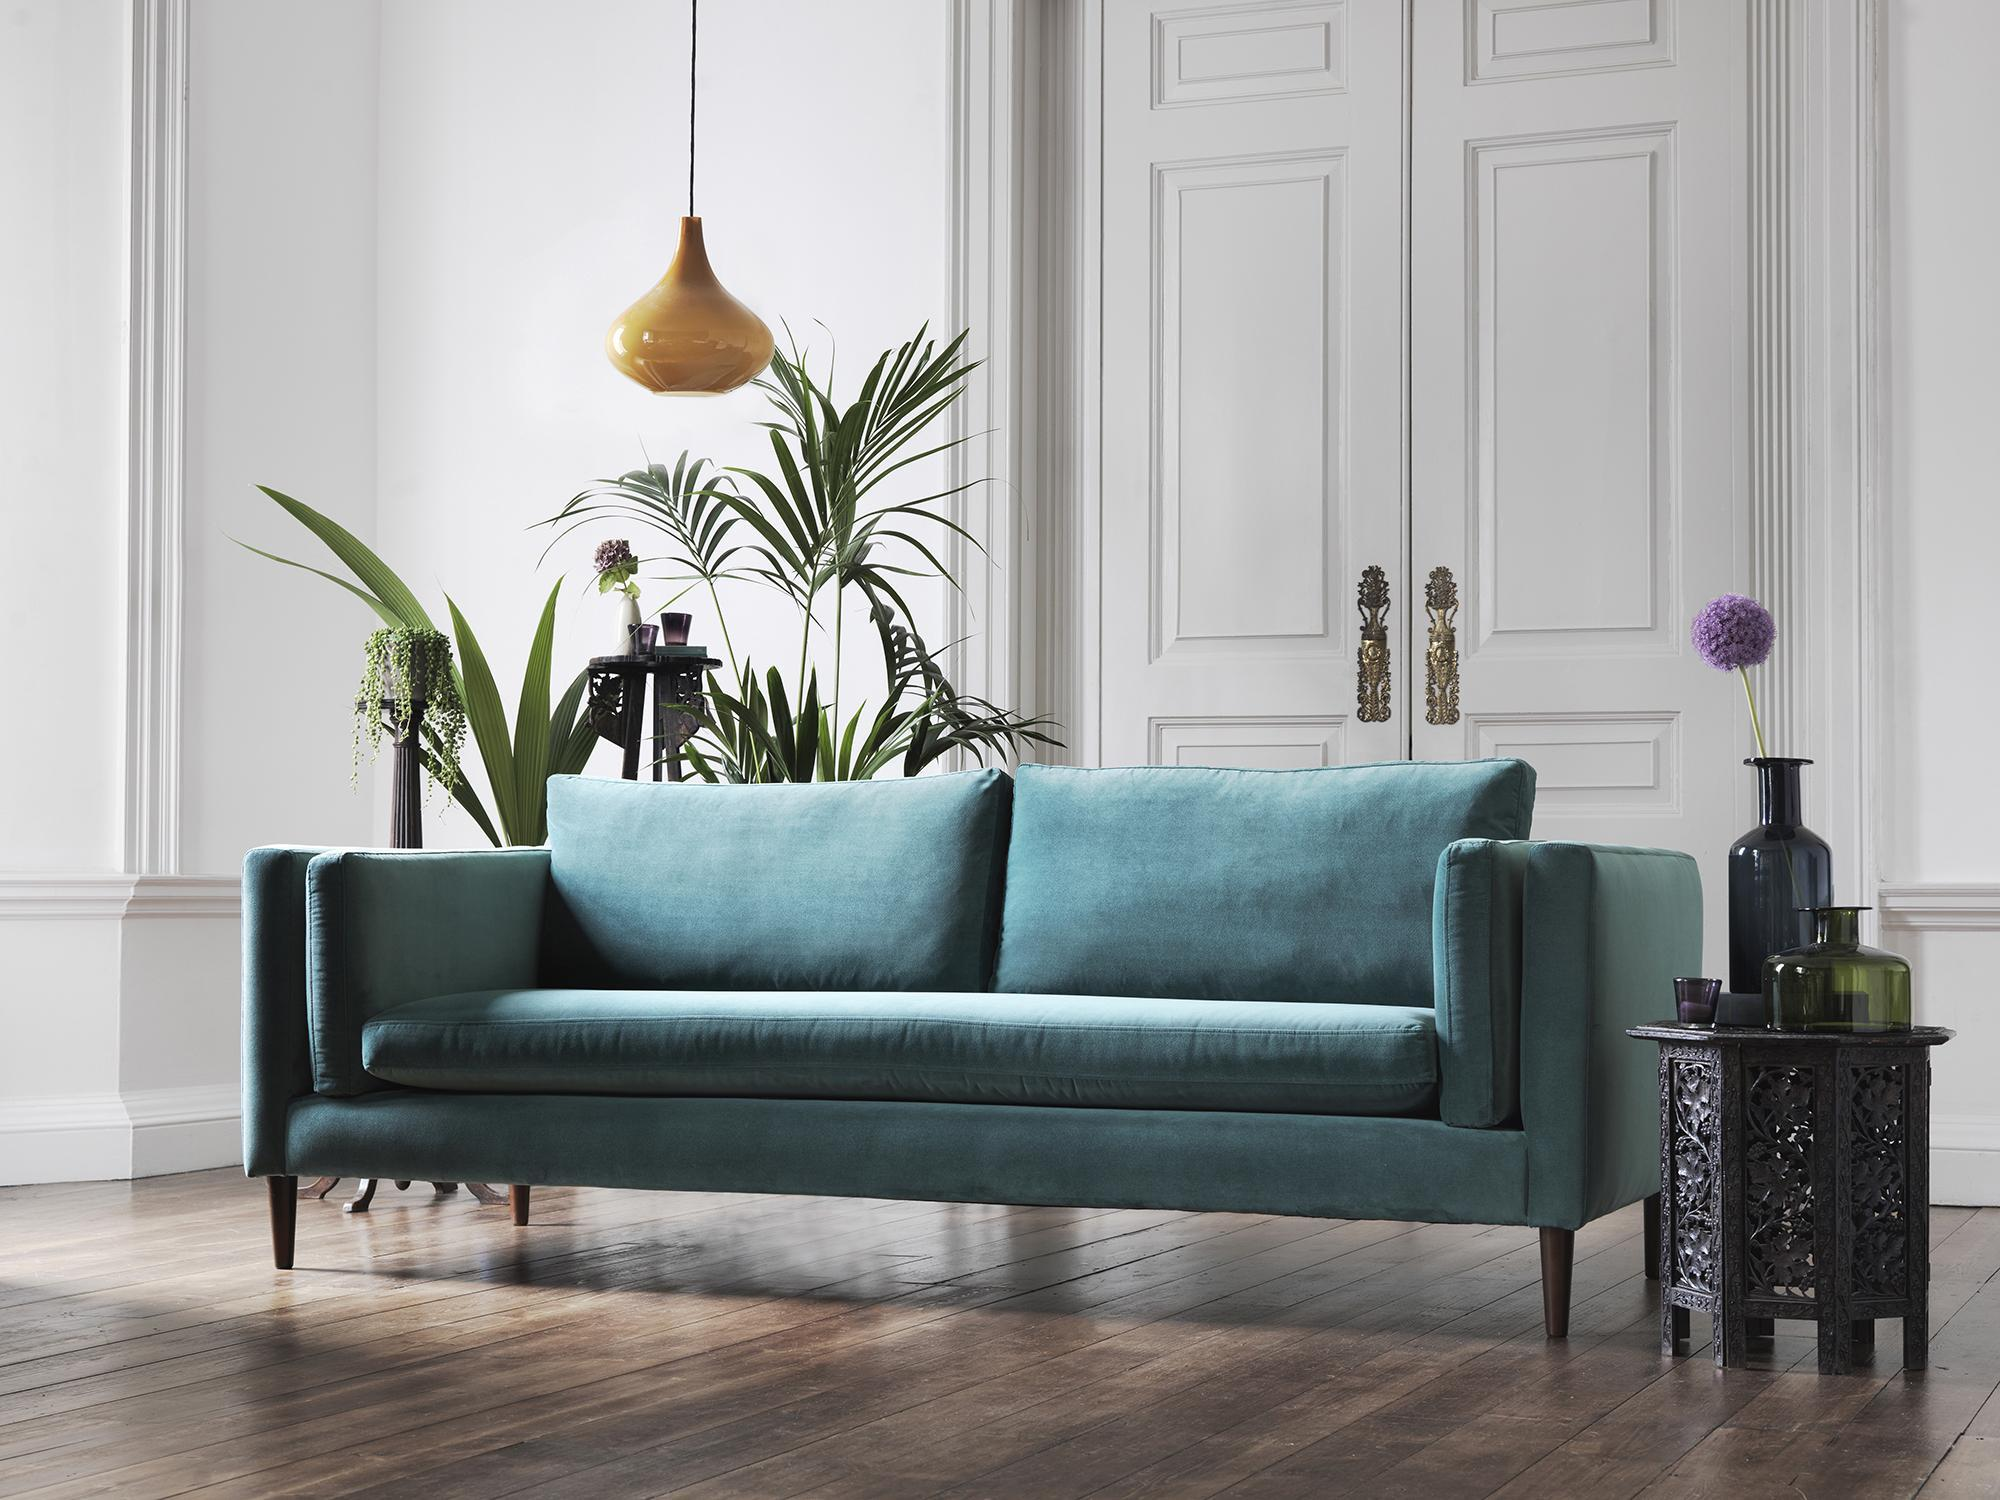 Petrol Blue Sofa Living Room Caseconrad Com